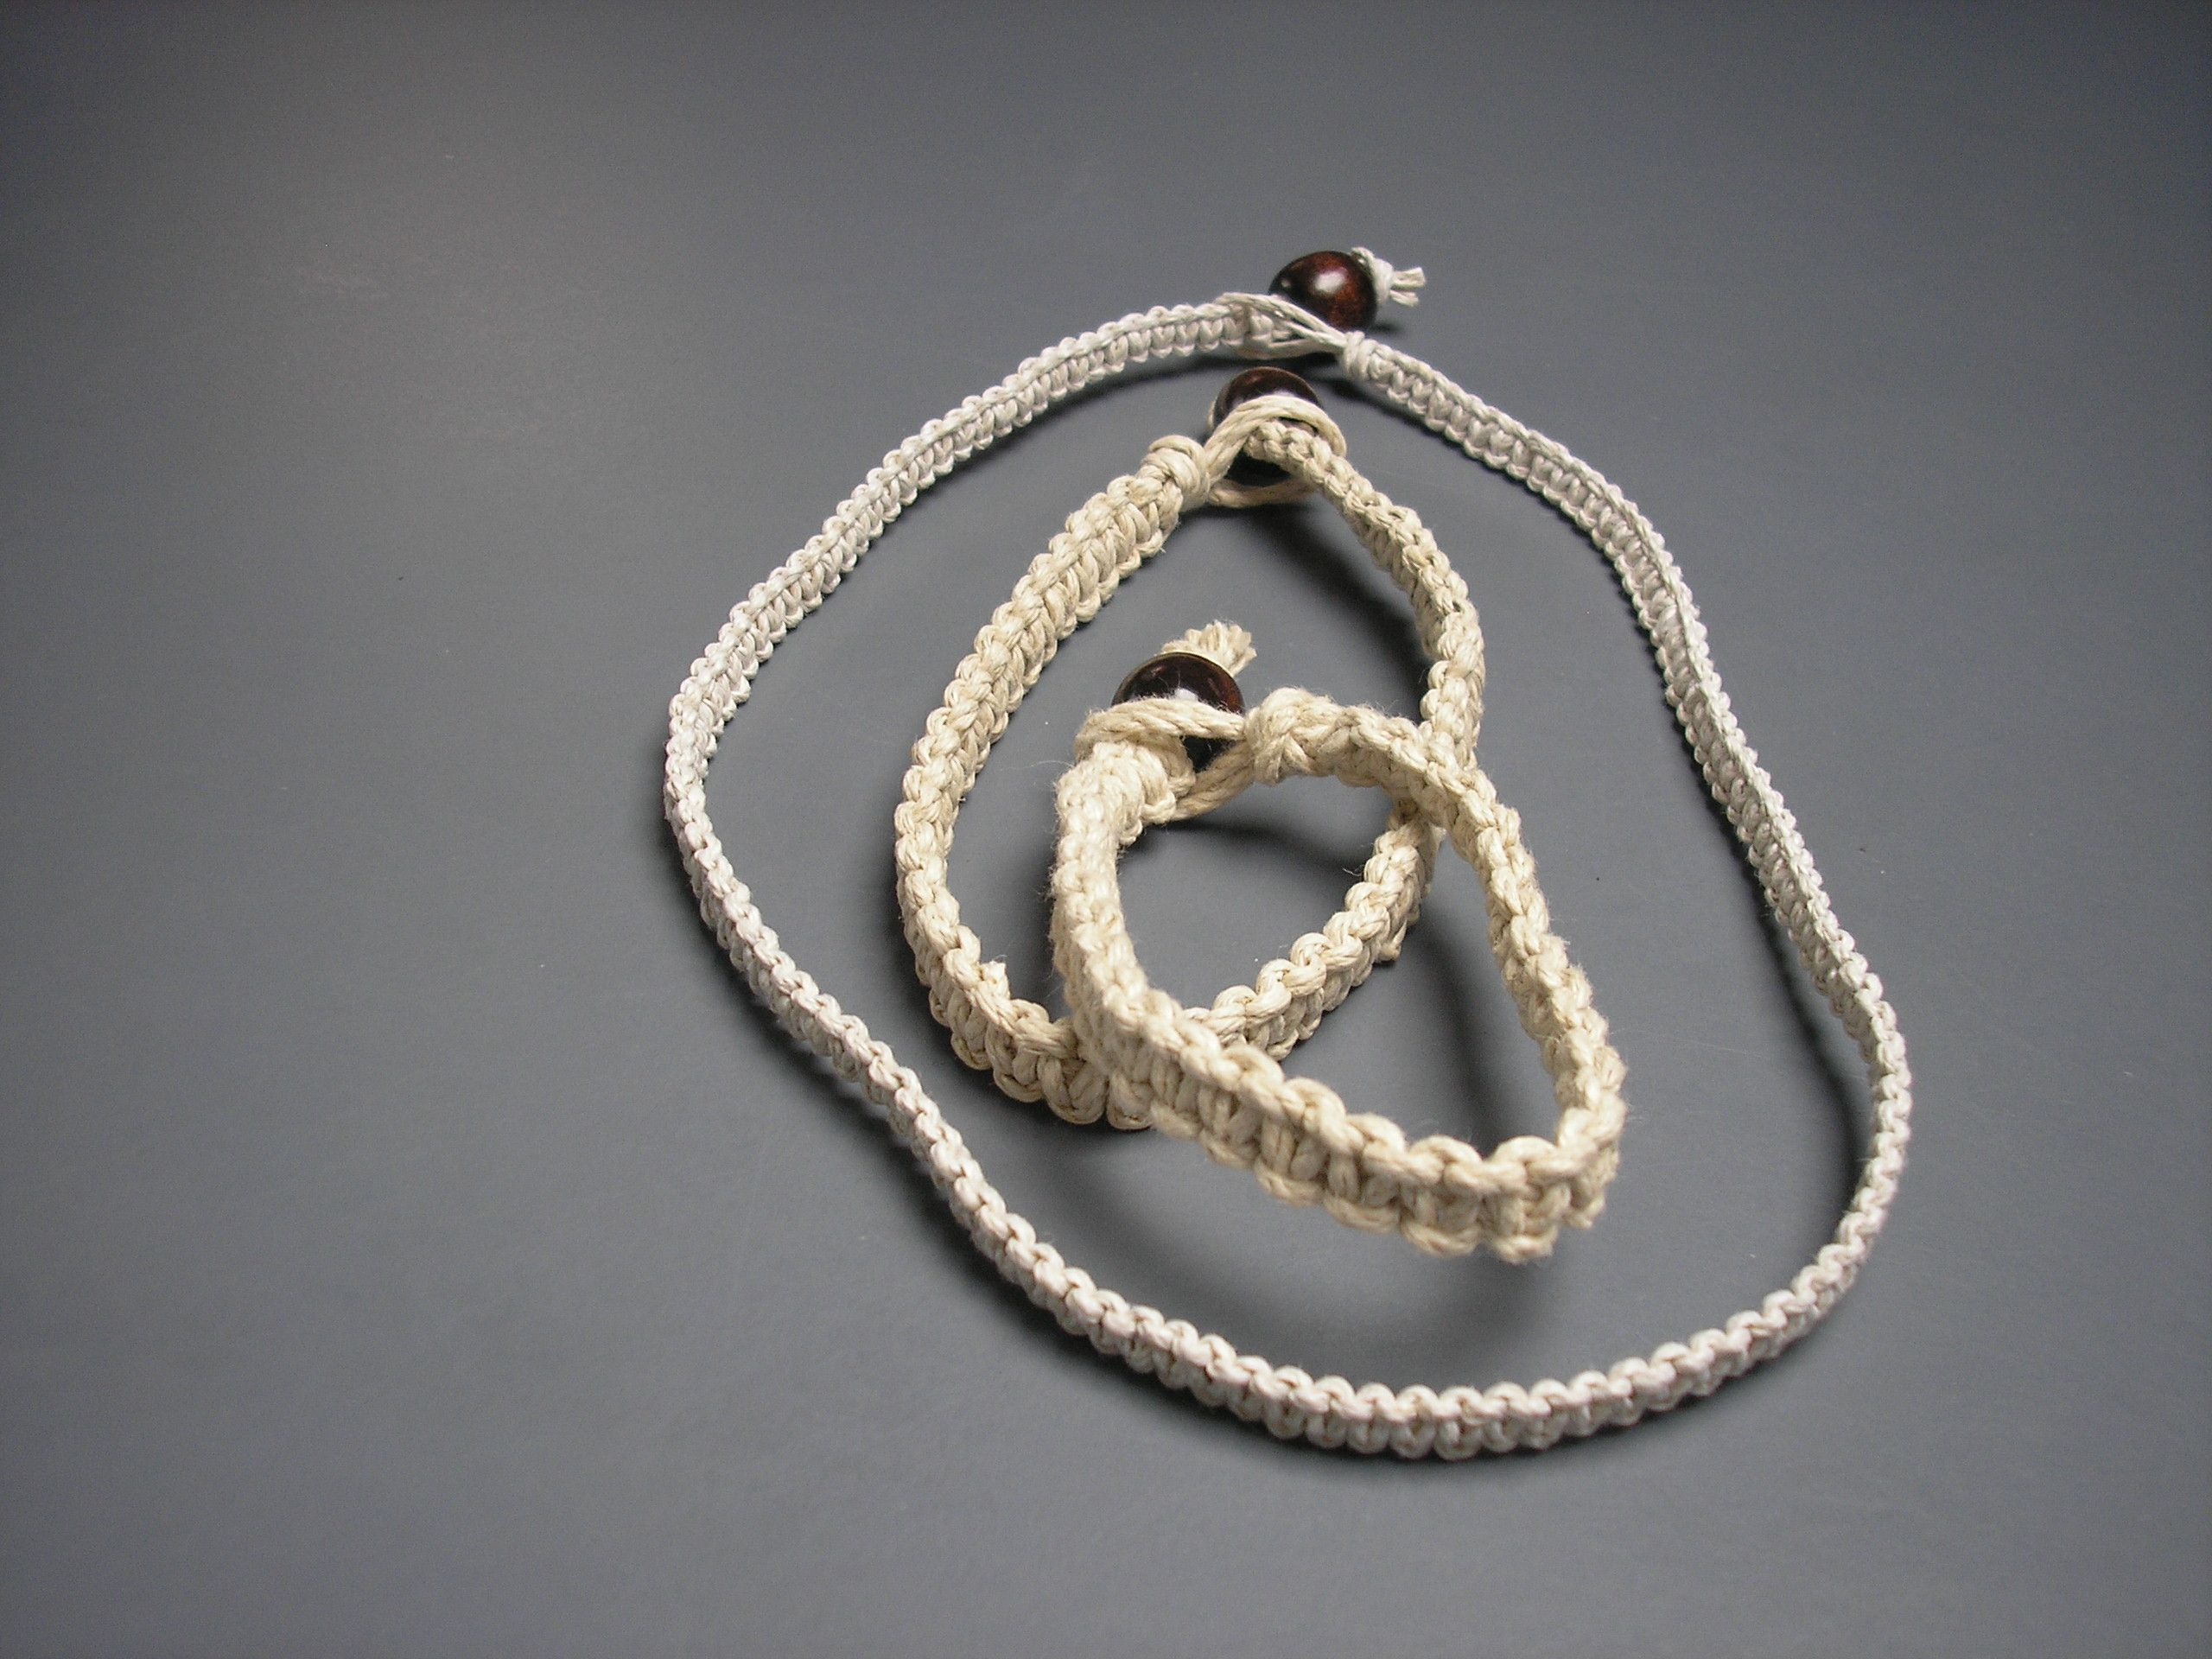 Matching 20 lb Flat Natural Hemp Jewelry Set Includes a Necklace